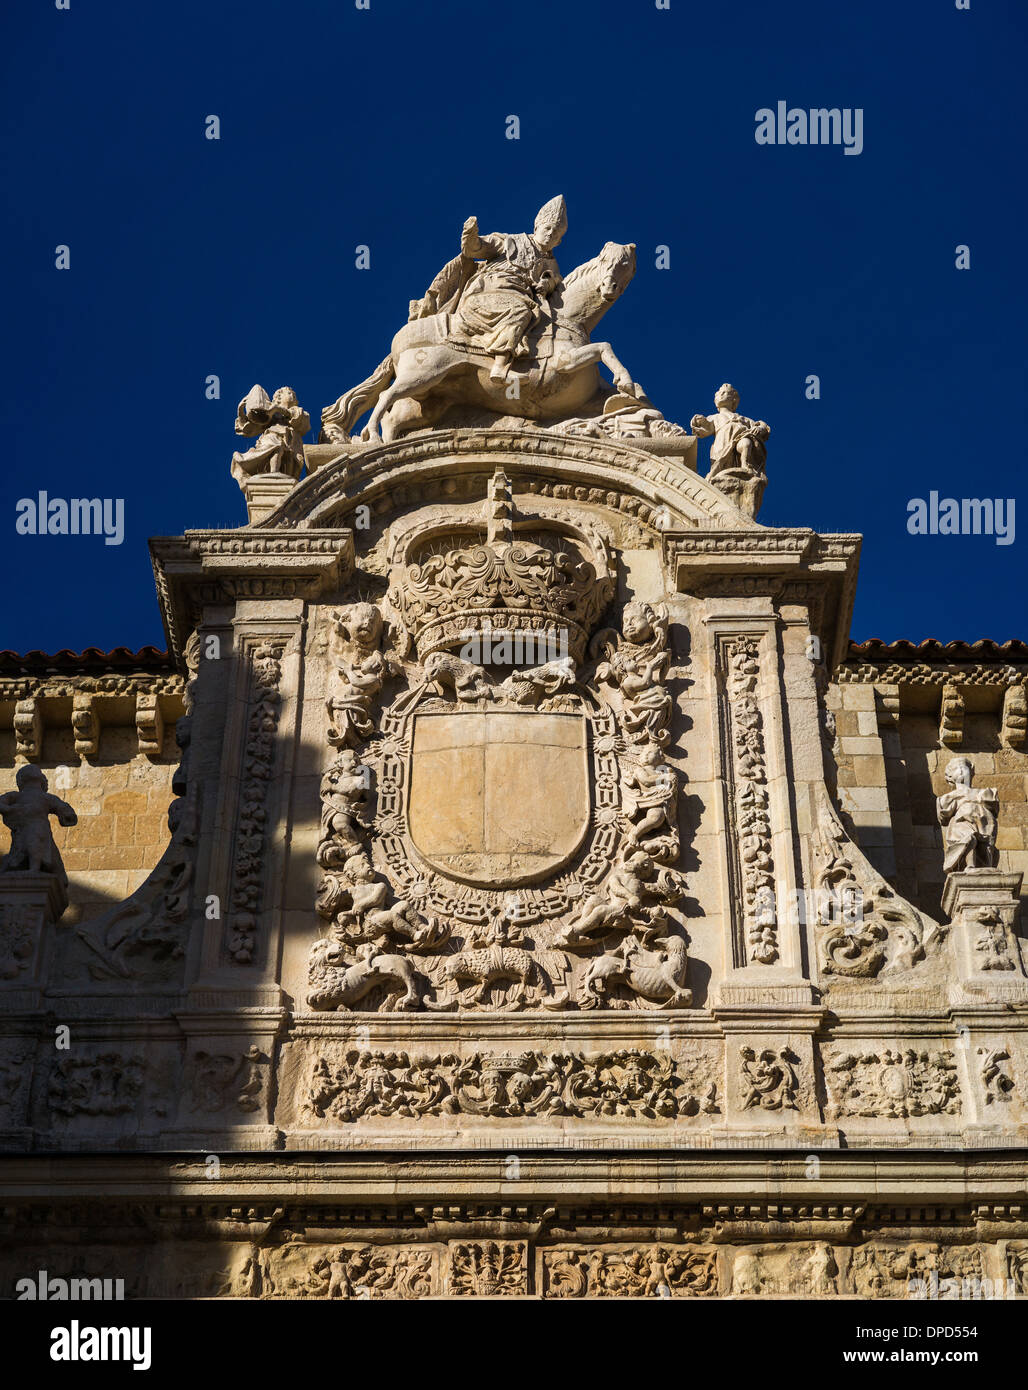 Detail of Puerta de Perdón. Basílica de San Isidoro in León, Spain Stock Photo